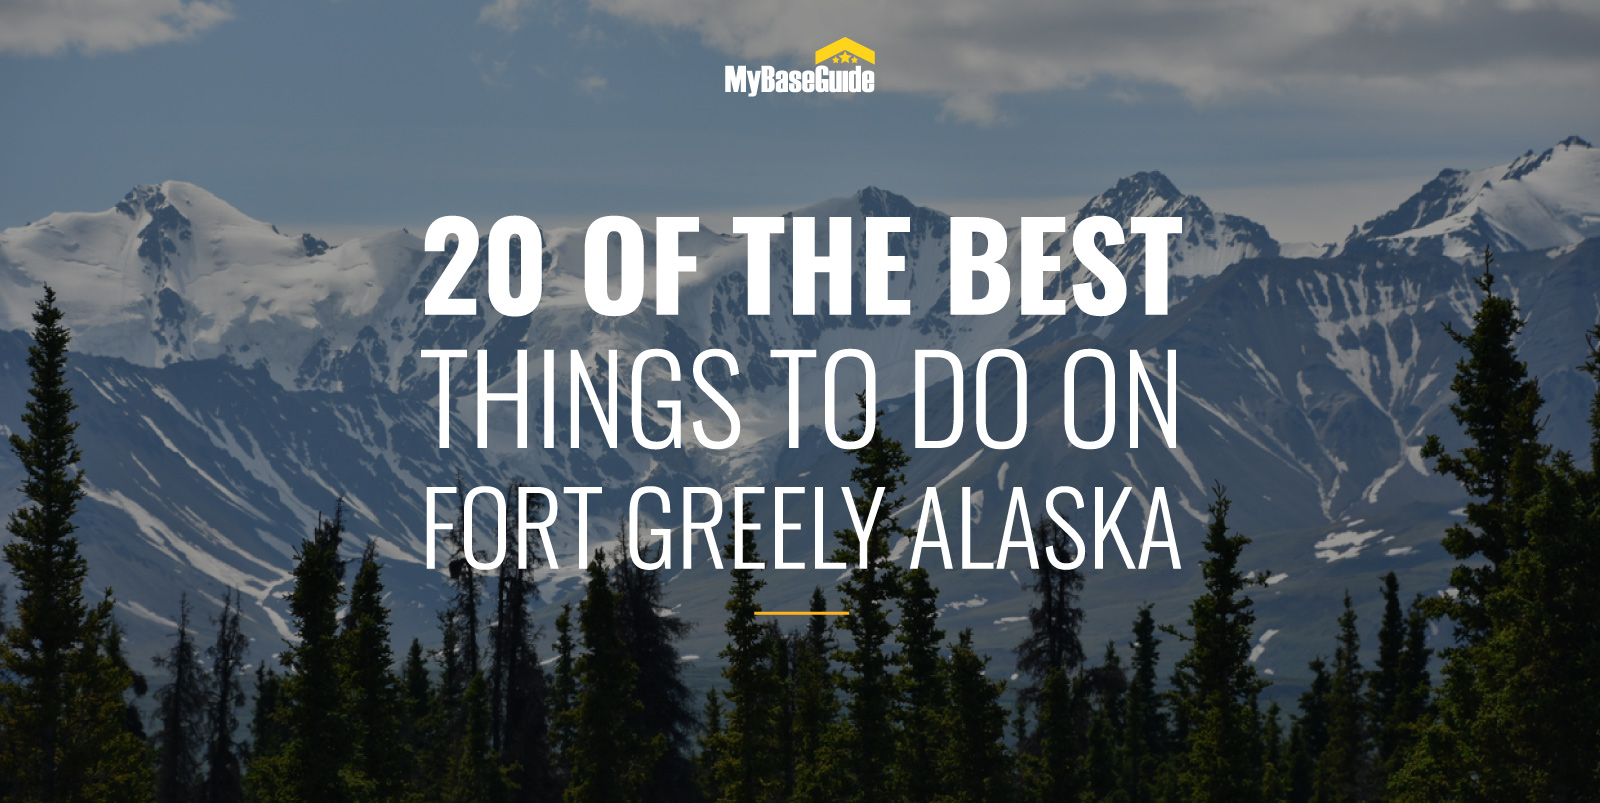 20 Of the Best Things to Do on Fort Greely Alaska